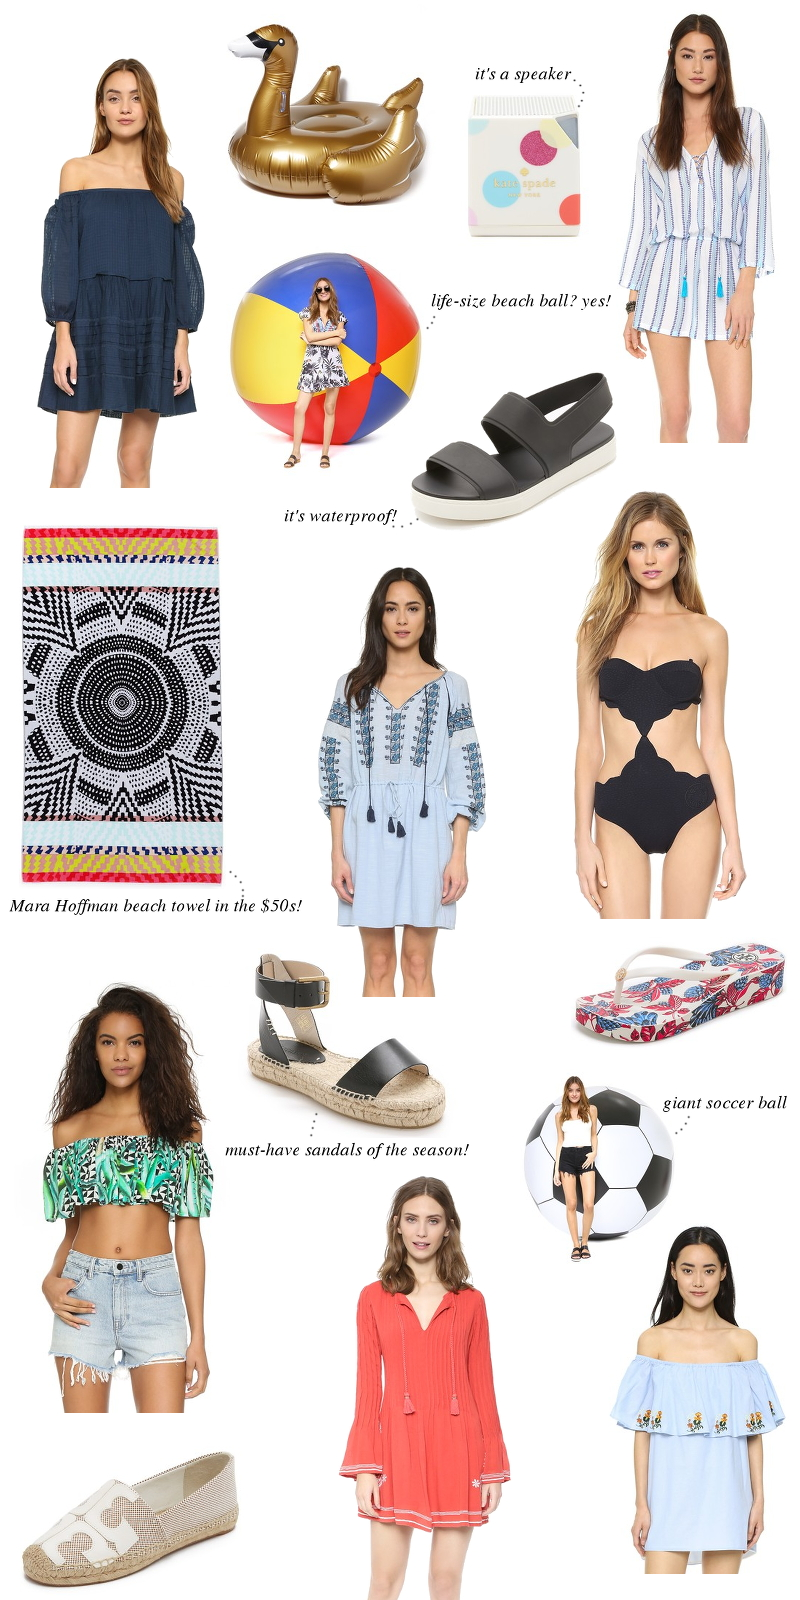 Shopbop-surprise-sale-beach-bound-fashion-2